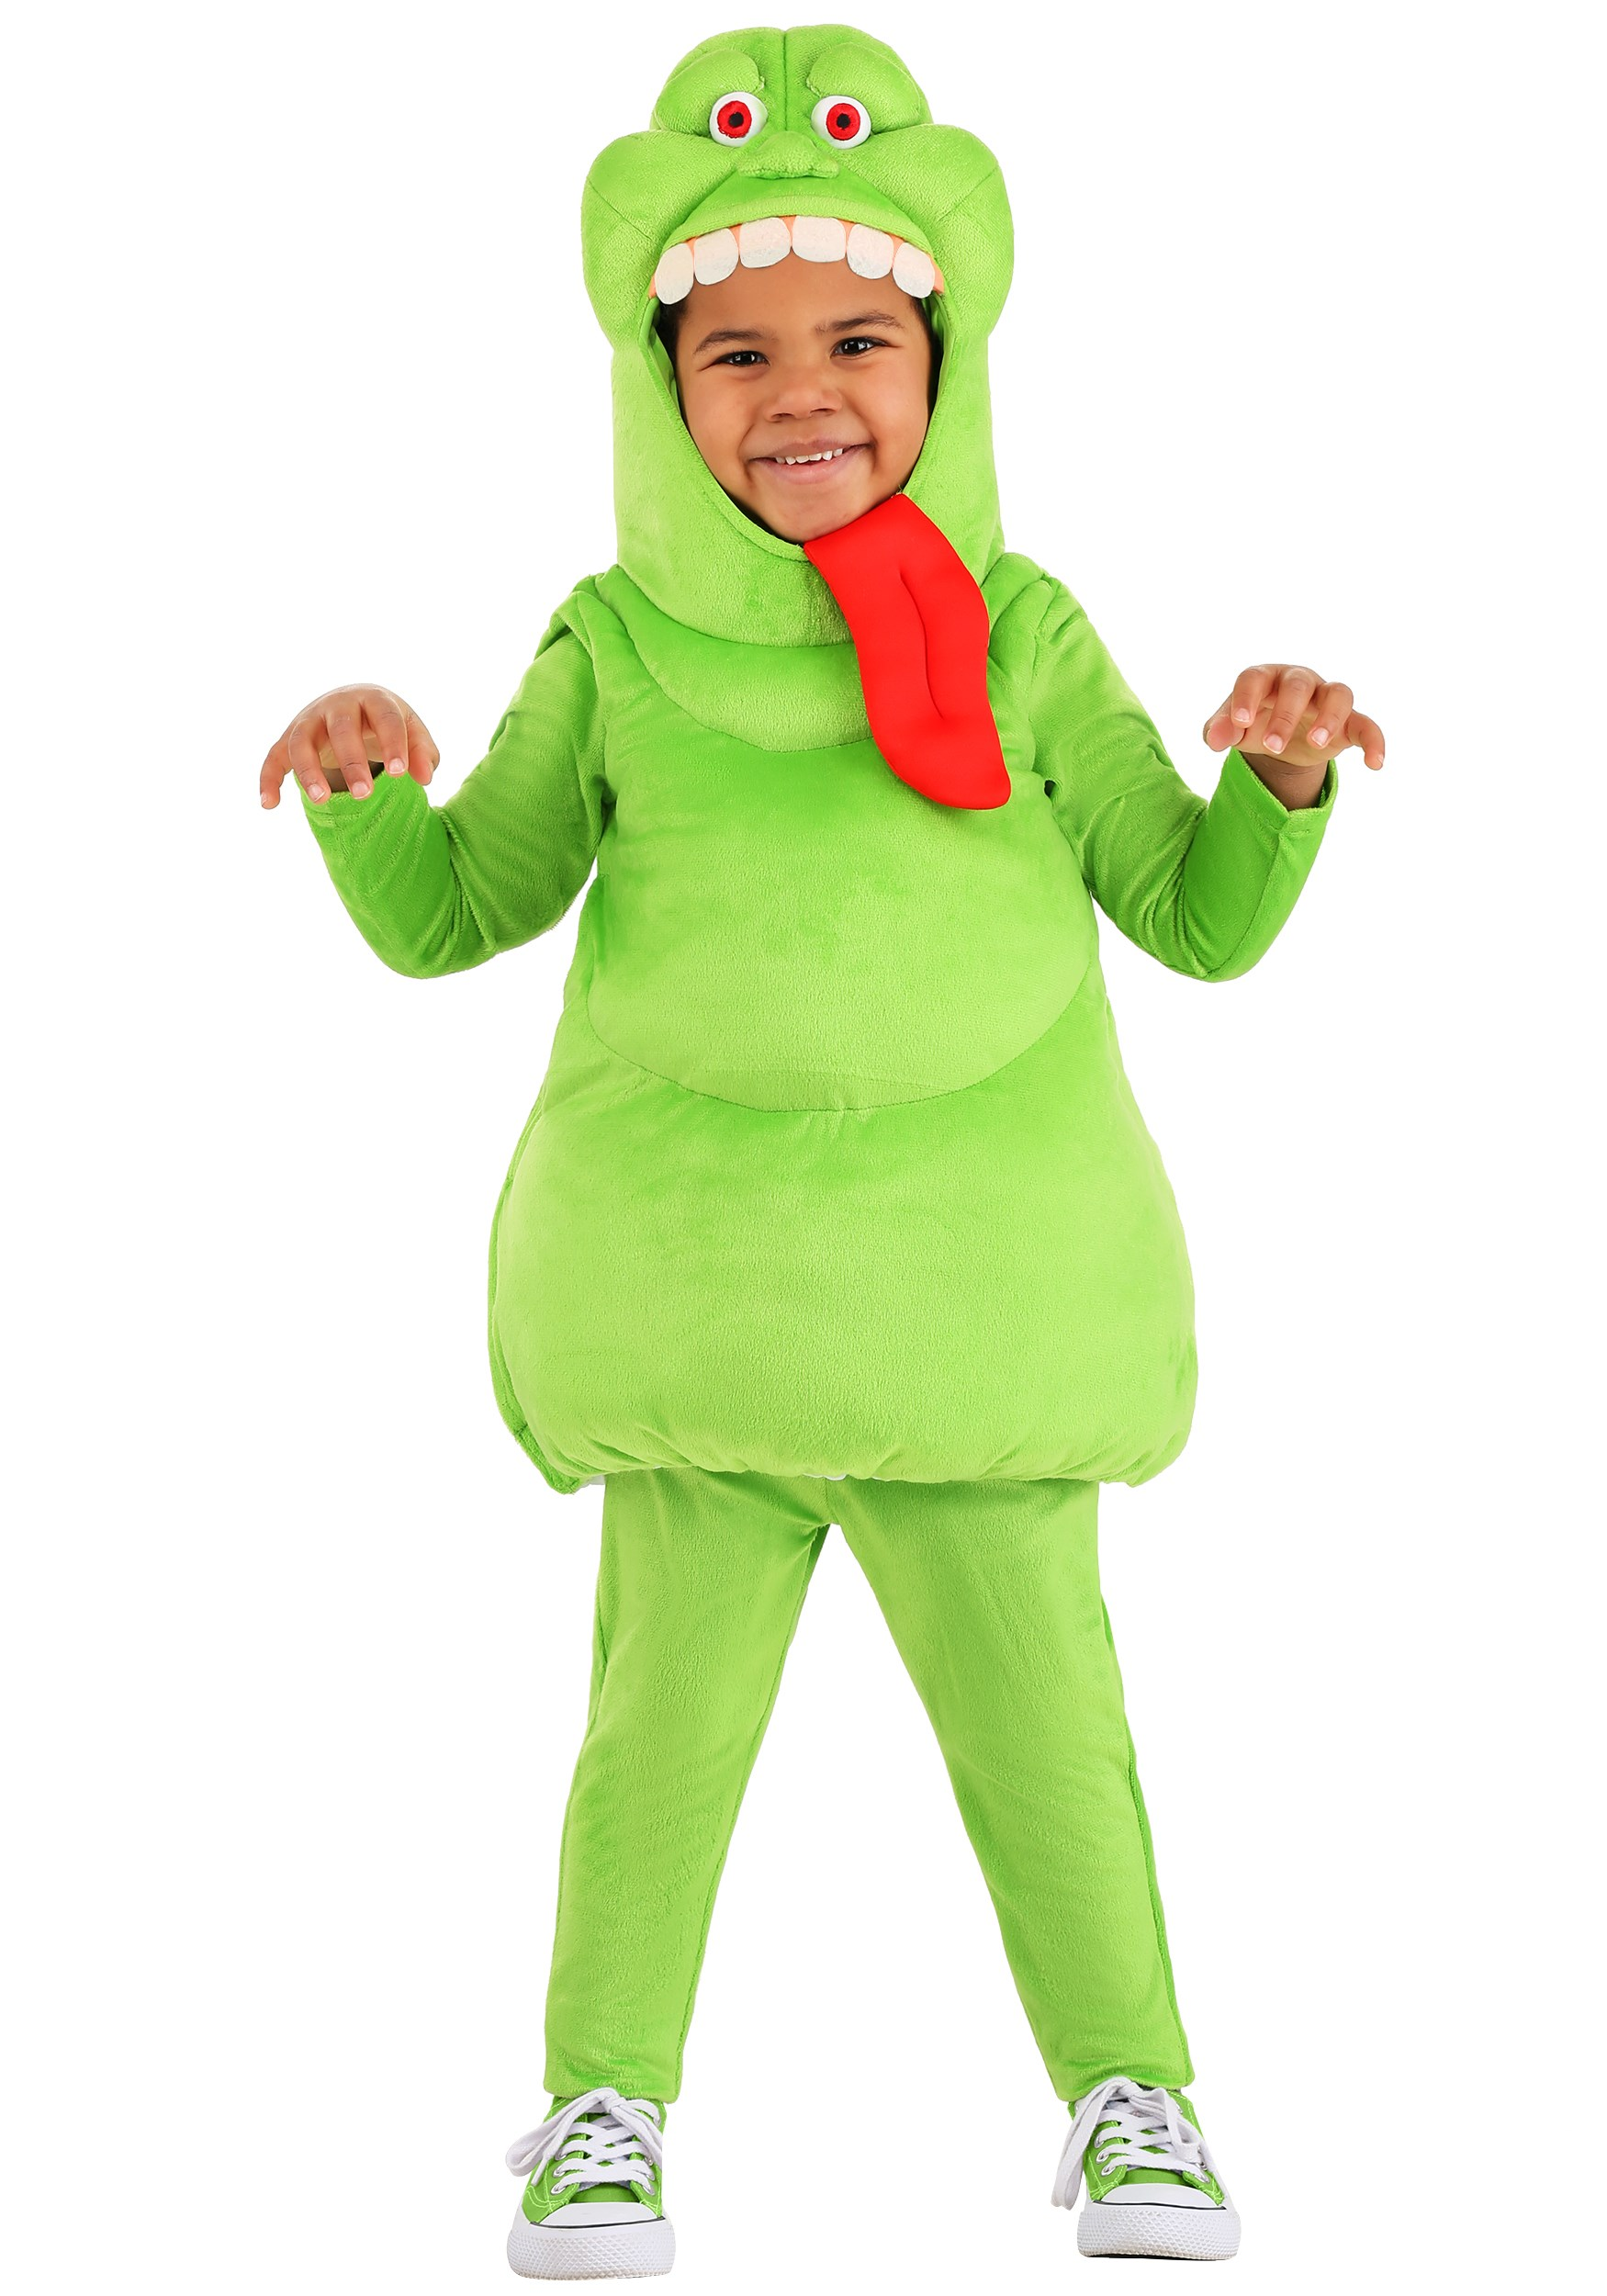 Ghostbusters Slimer Costume For Toddler's